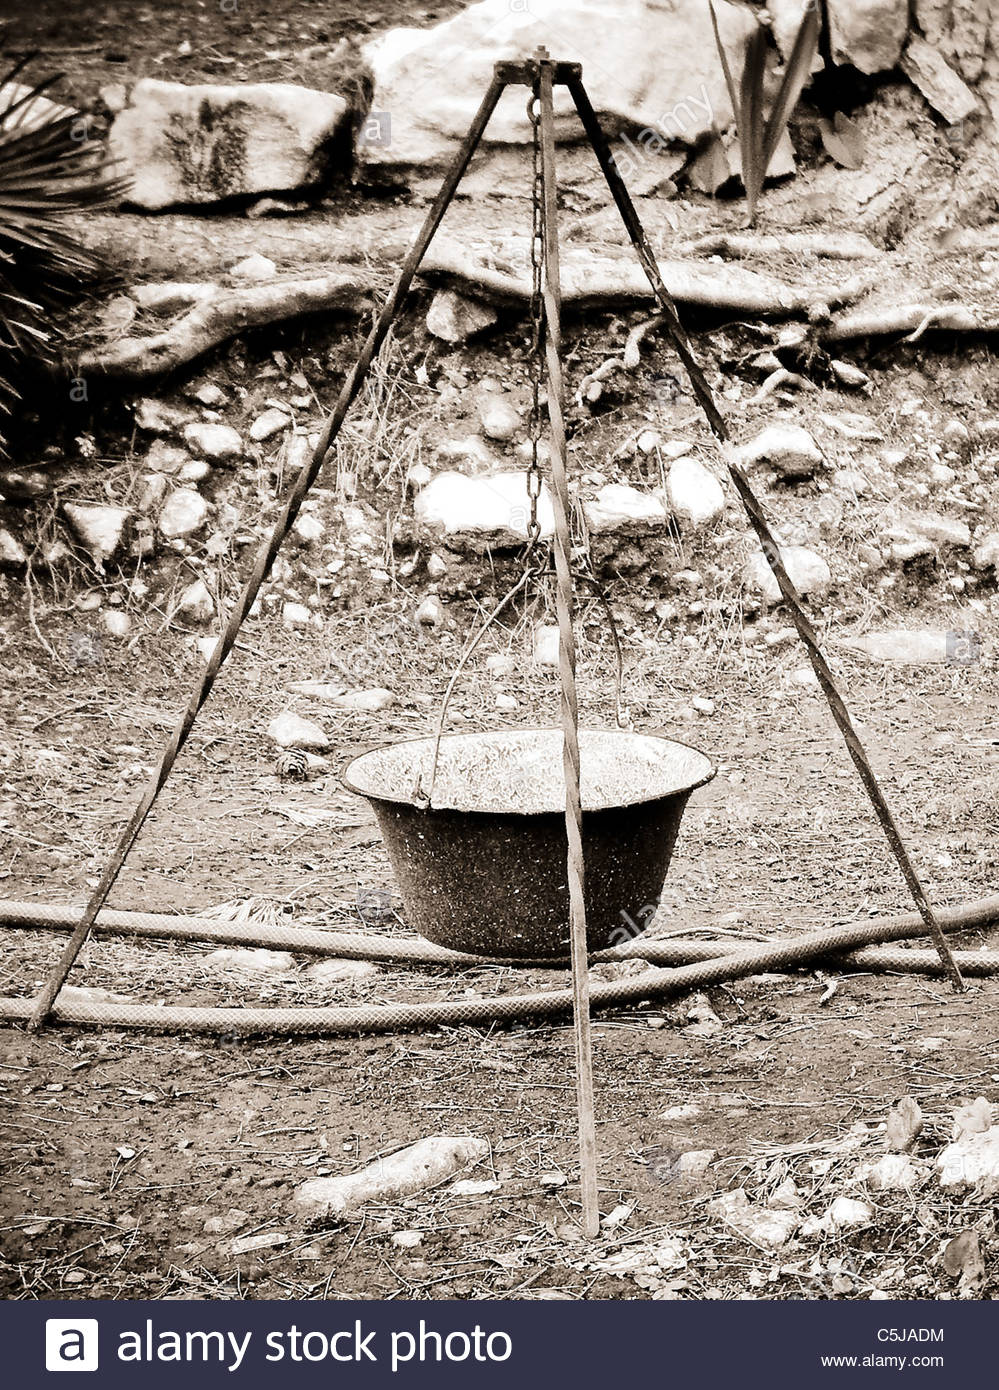 Camping equipment used by explorer Kypros in Africa - cooking tripod Stock Photo